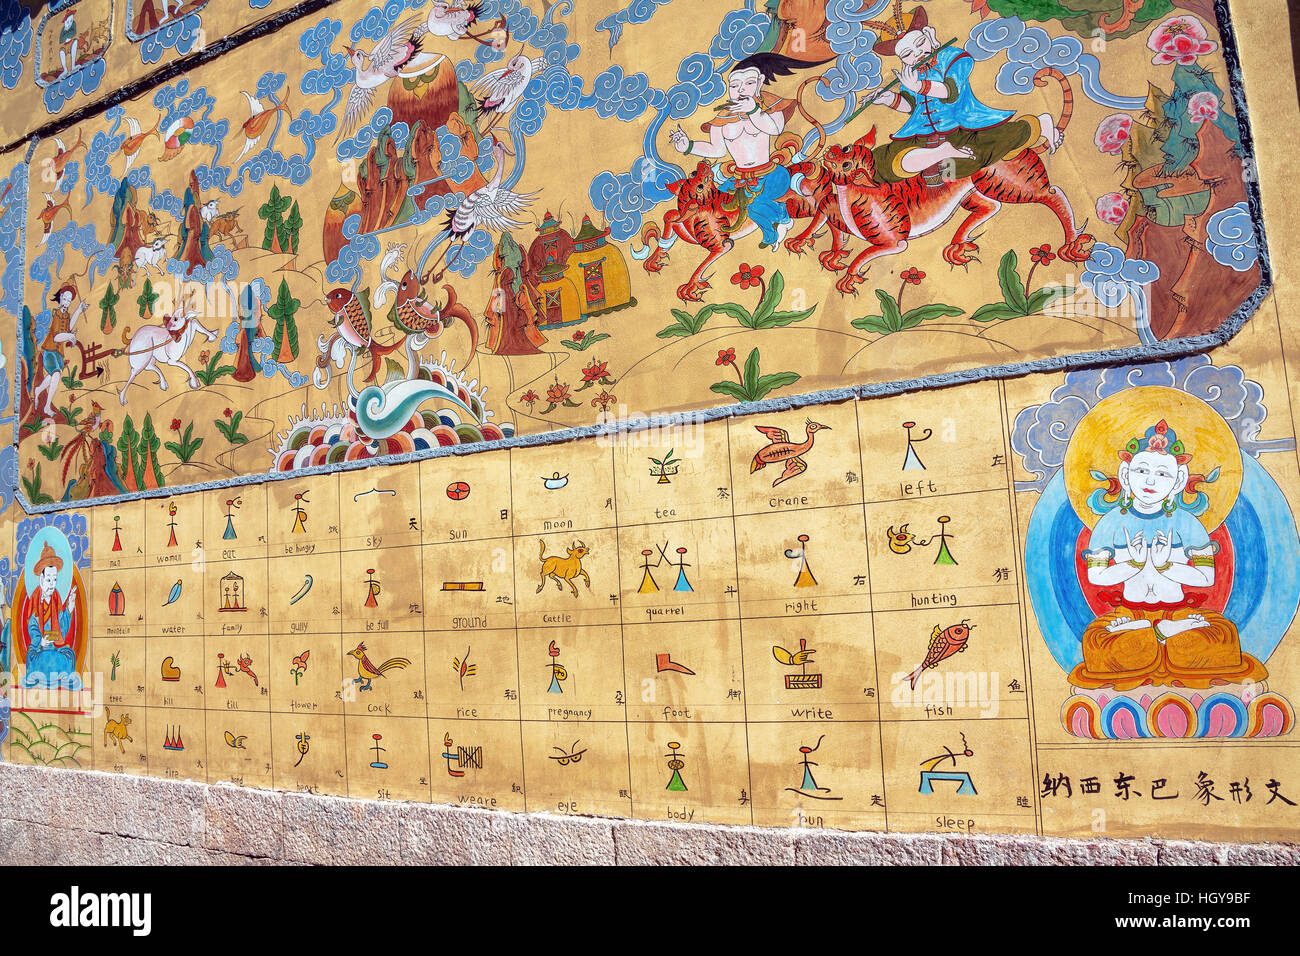 Naxi Dongba paintings in Lijiang, China. Only a few dozen elderly people can read these characters at the moment. - Stock Image